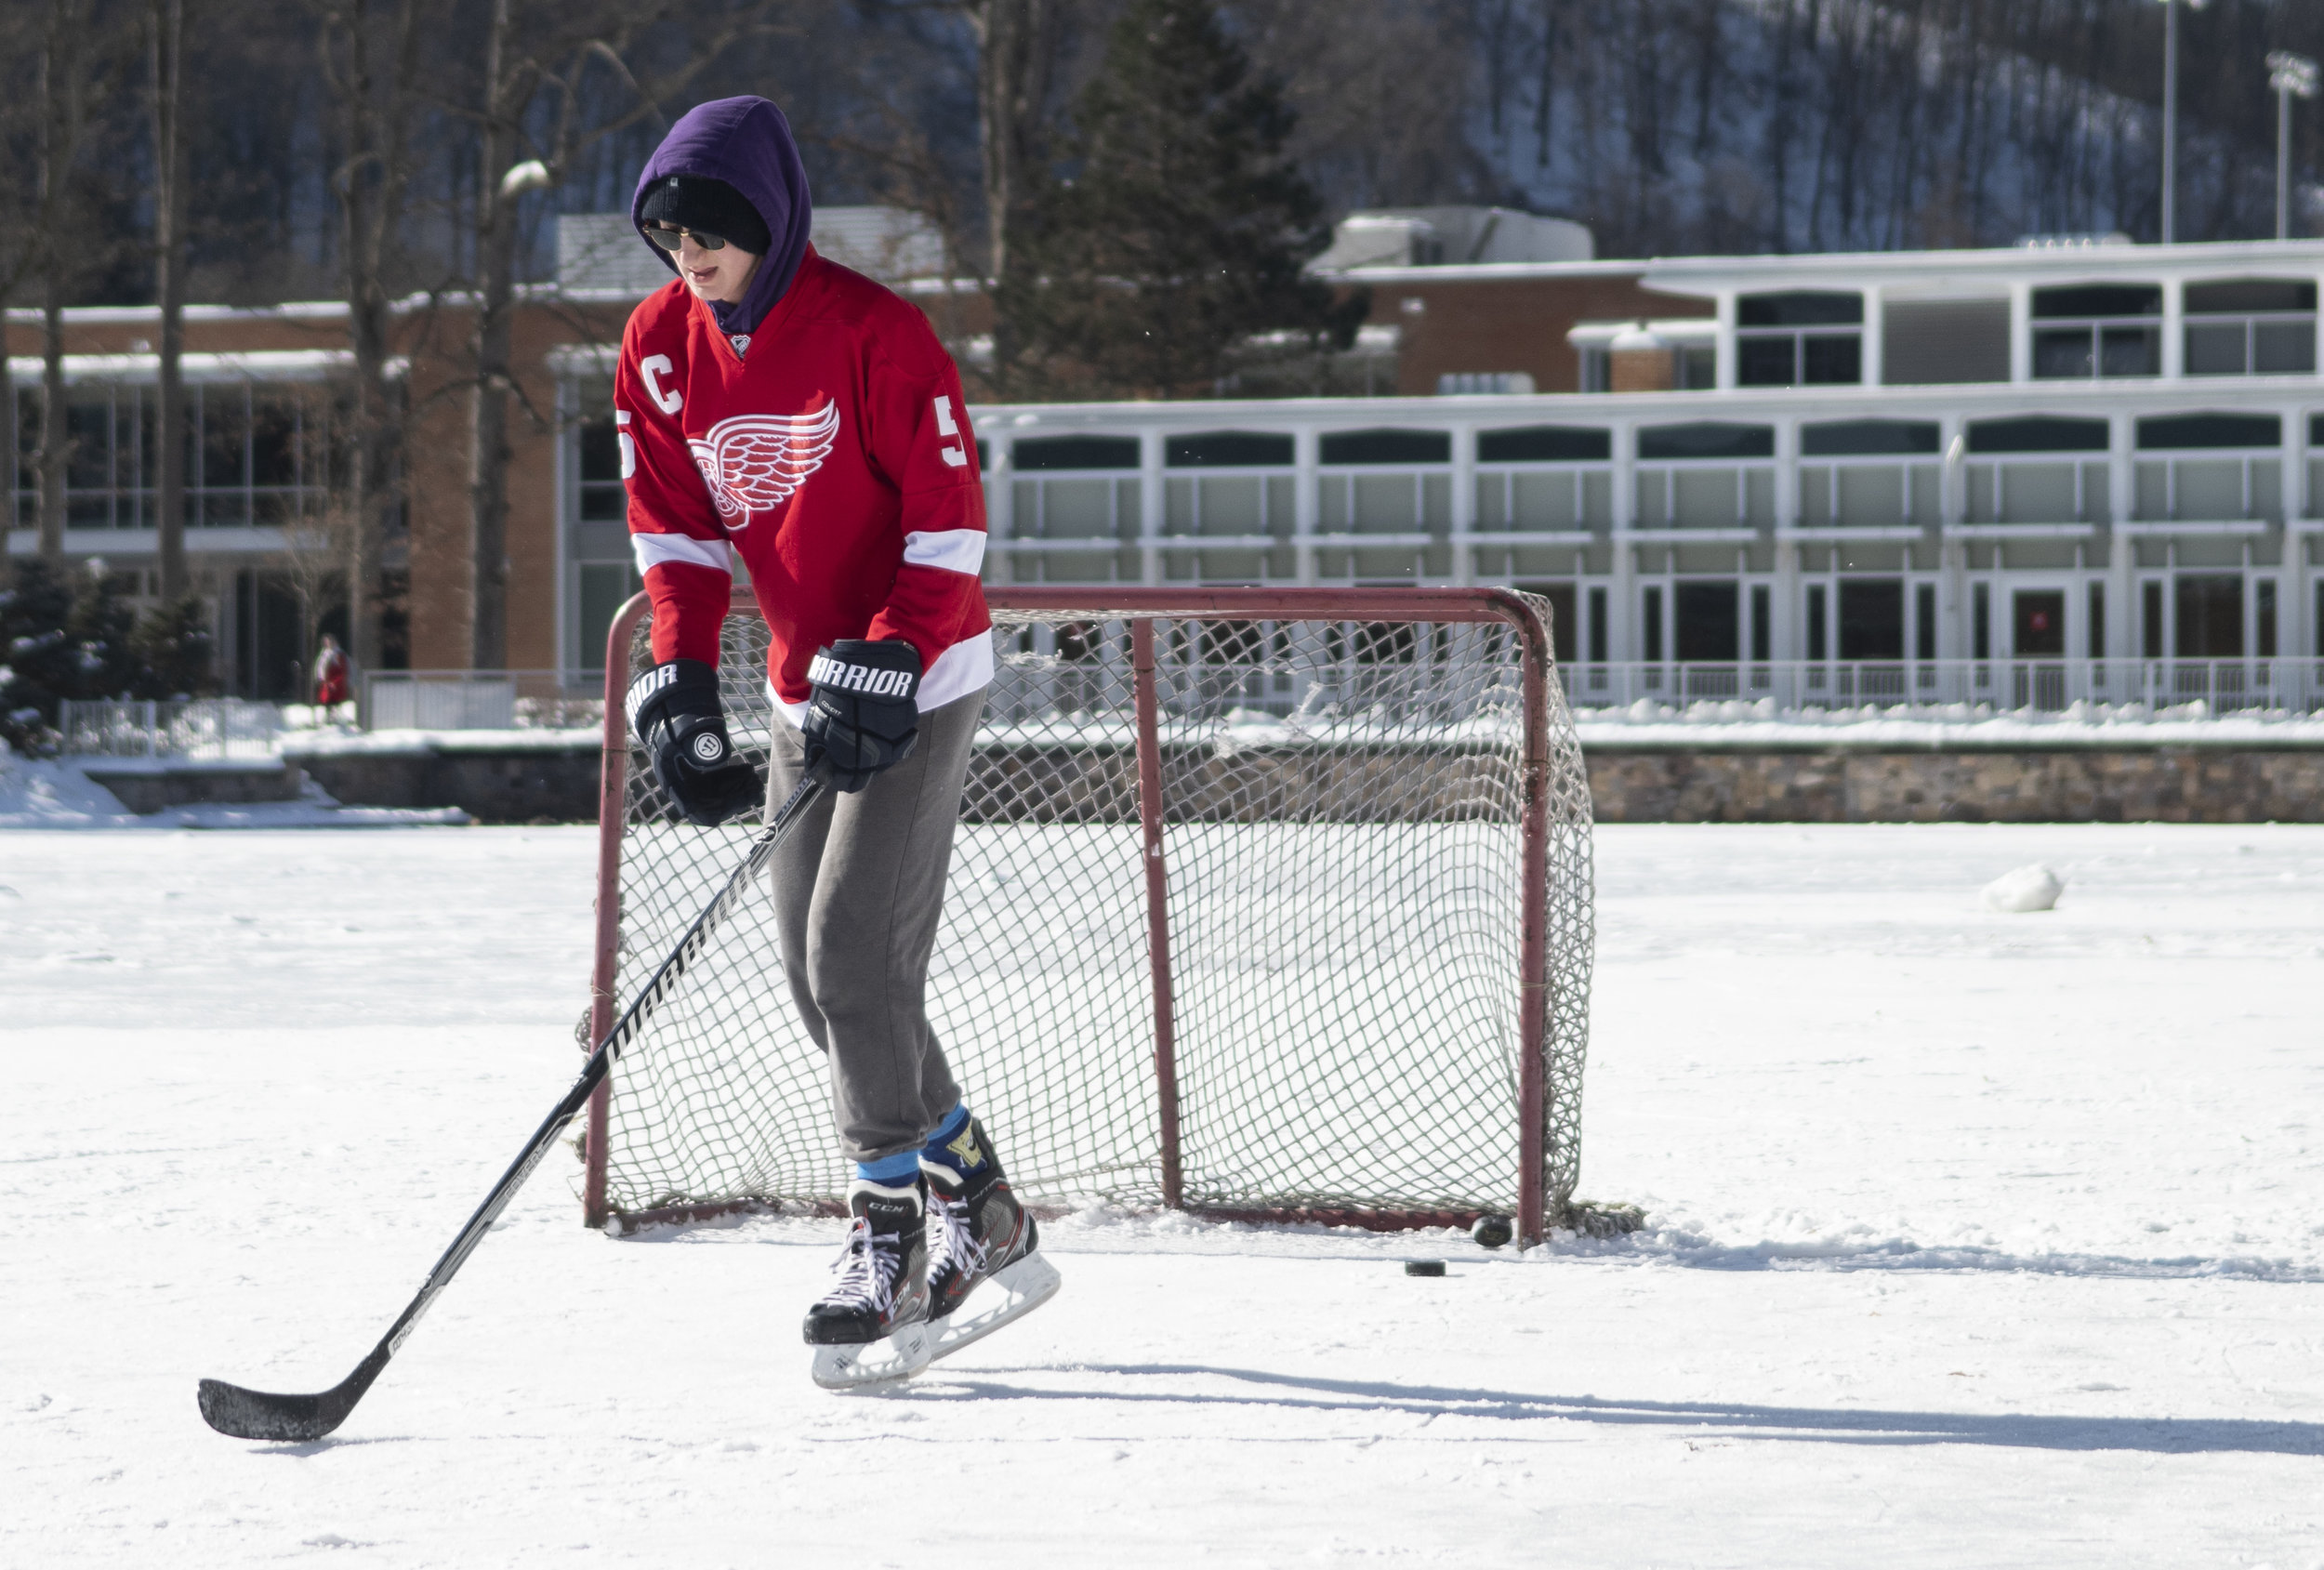 Ian Girt (freshman-information science technology) skates on the reflecting pond at Penn State Altoona on on Jan. 25, 2019.